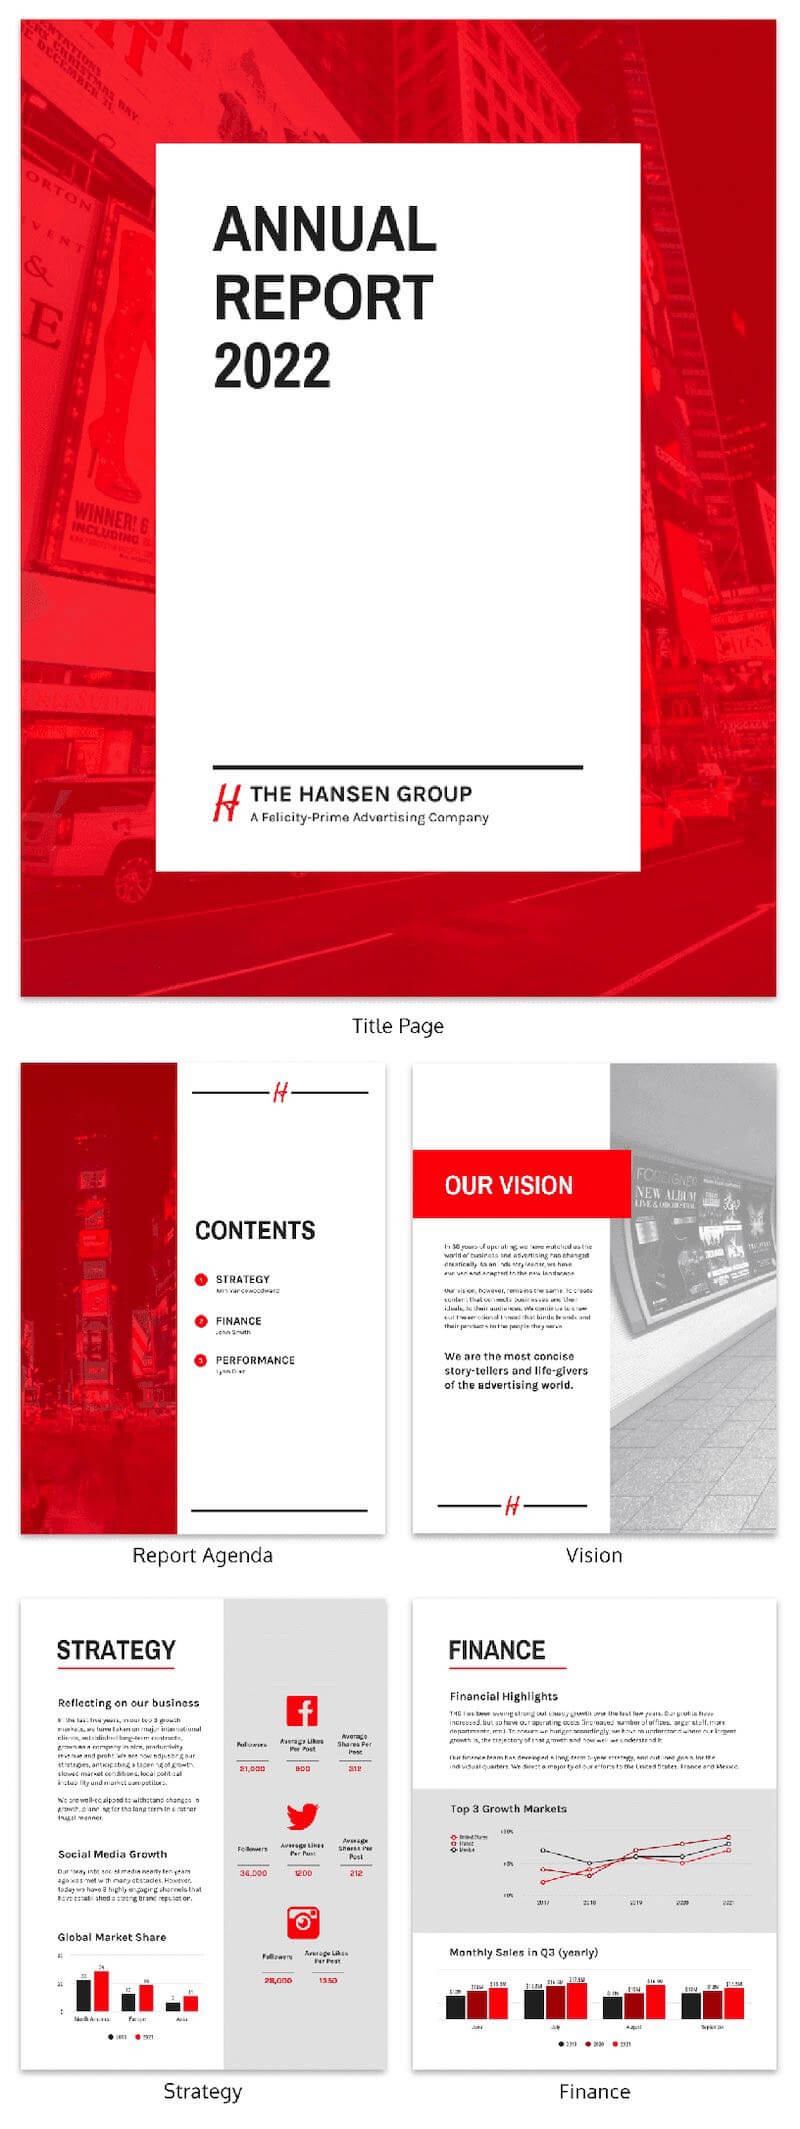 55+ Customizable Annual Report Design Templates, Examples & Tips intended for Chairman's Annual Report Template